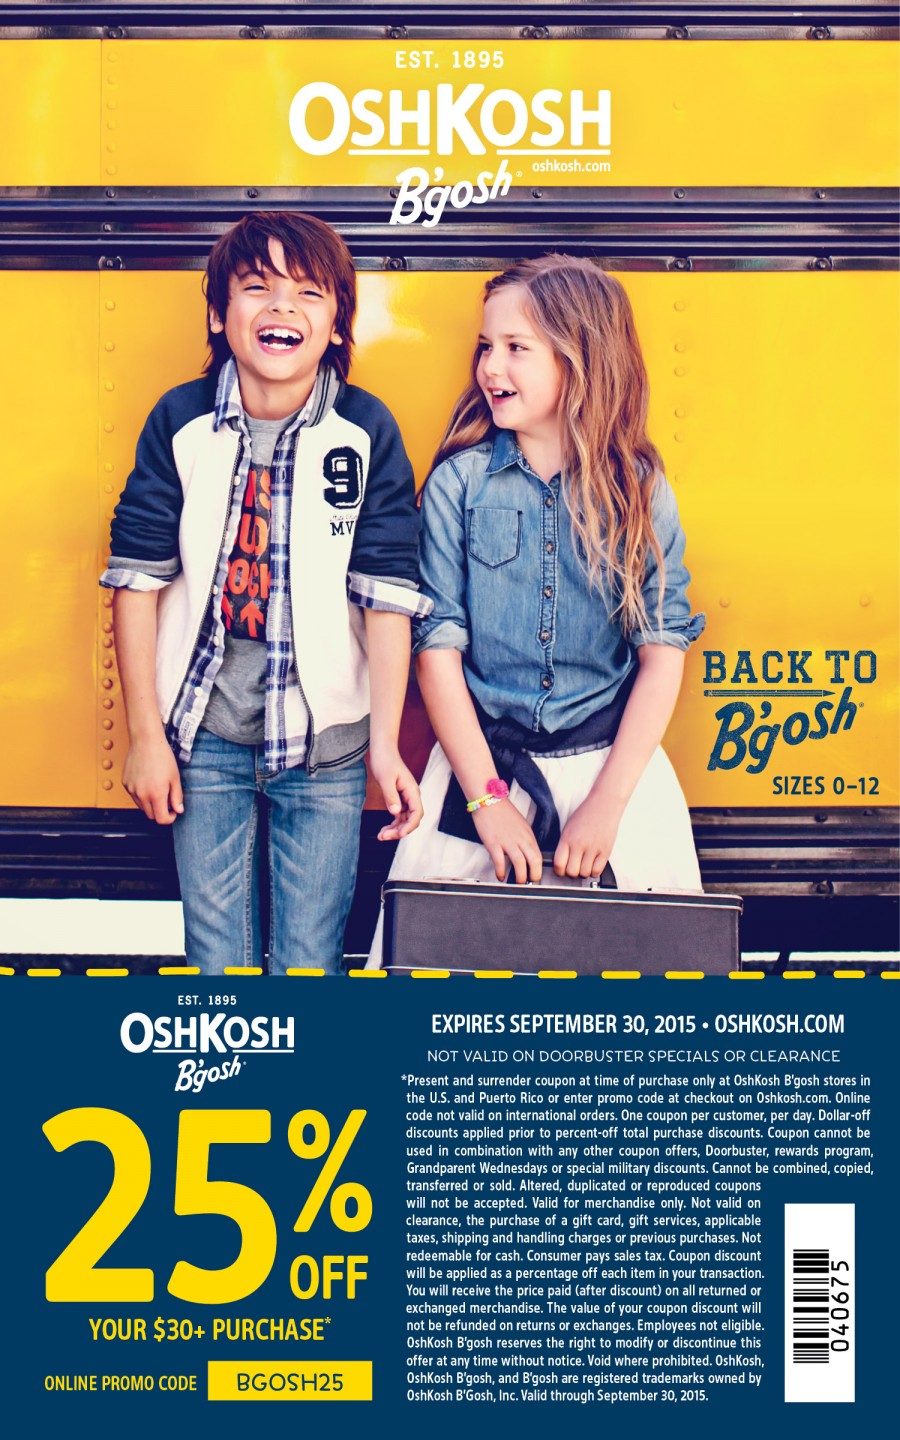 photo relating to Osh Coupons Printable named Osh kosh 25 off coupon printable : Disney printable coupon codes